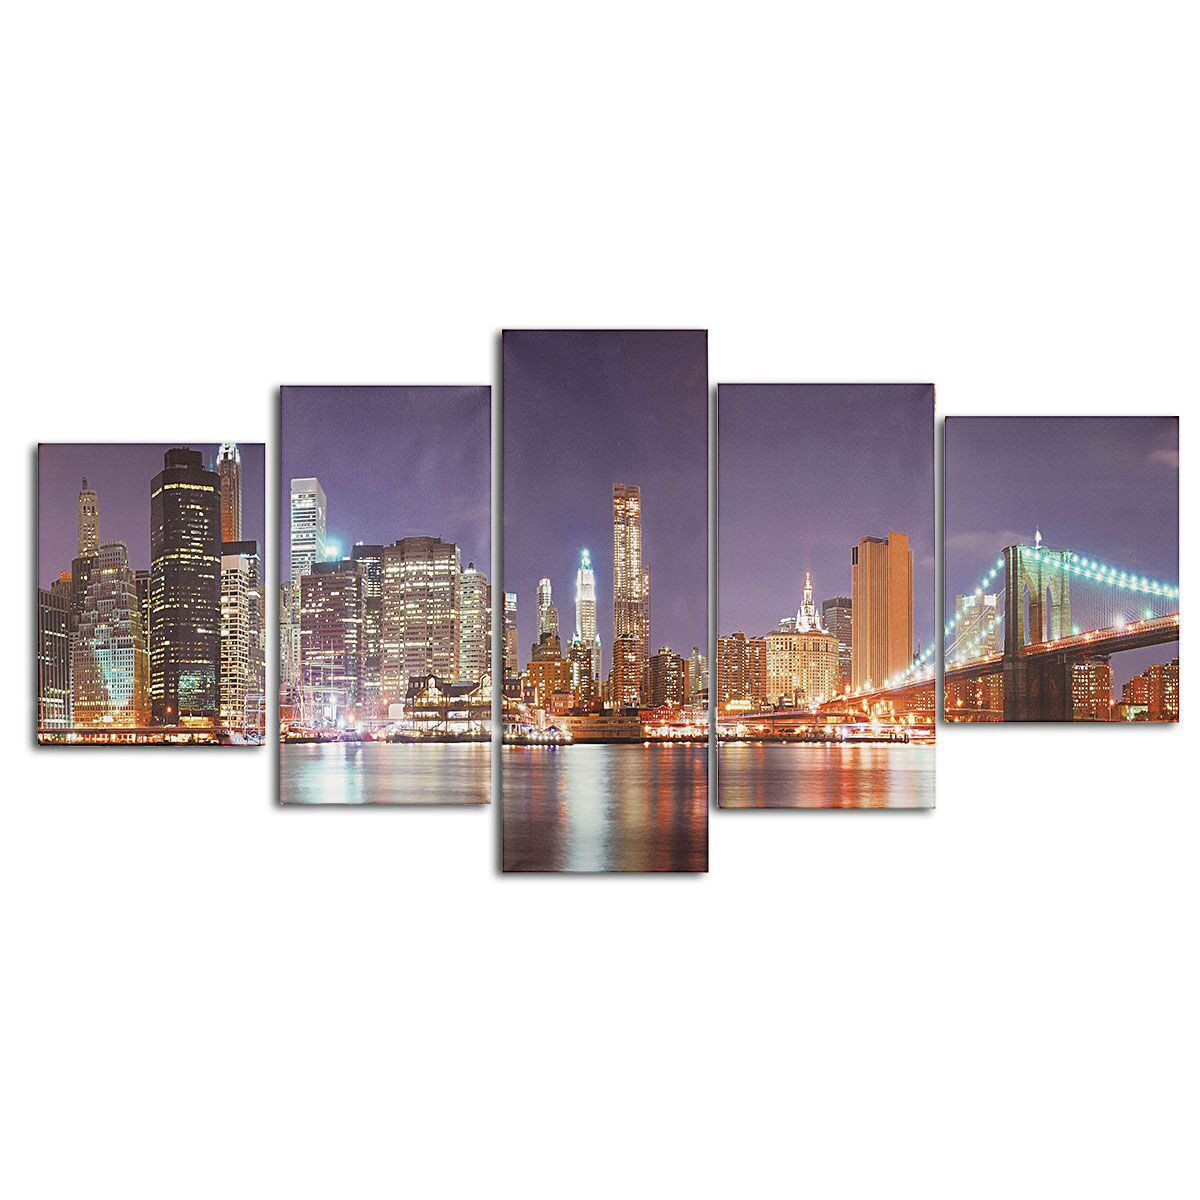 No Framed Town Seaside City Abstract Wall Art Canvas Oil Painting 5PC